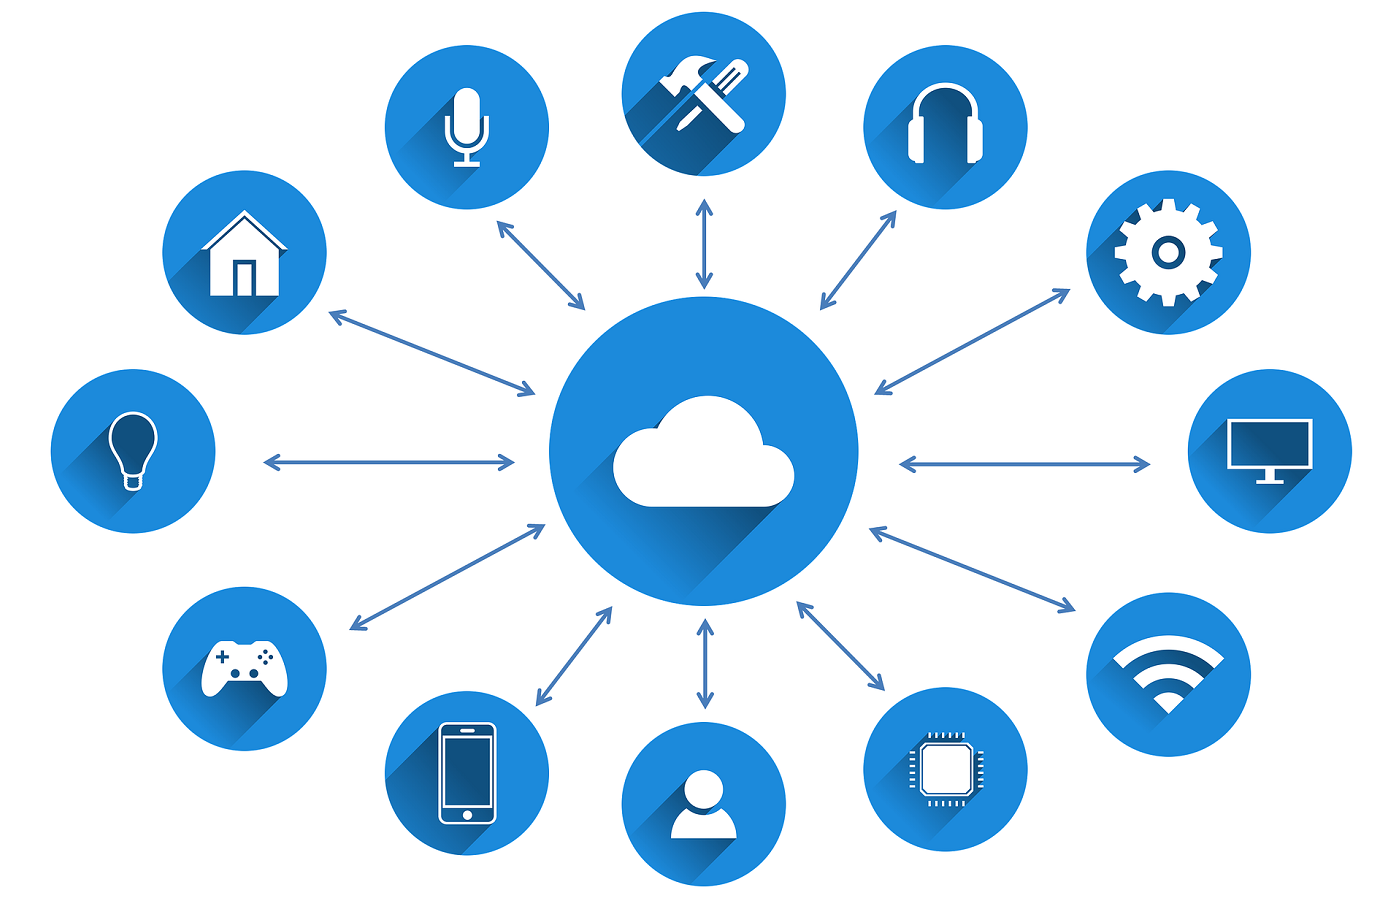 Graphic depiction of the Internet of Things. Cloud in the center, connected to various electronic devices.